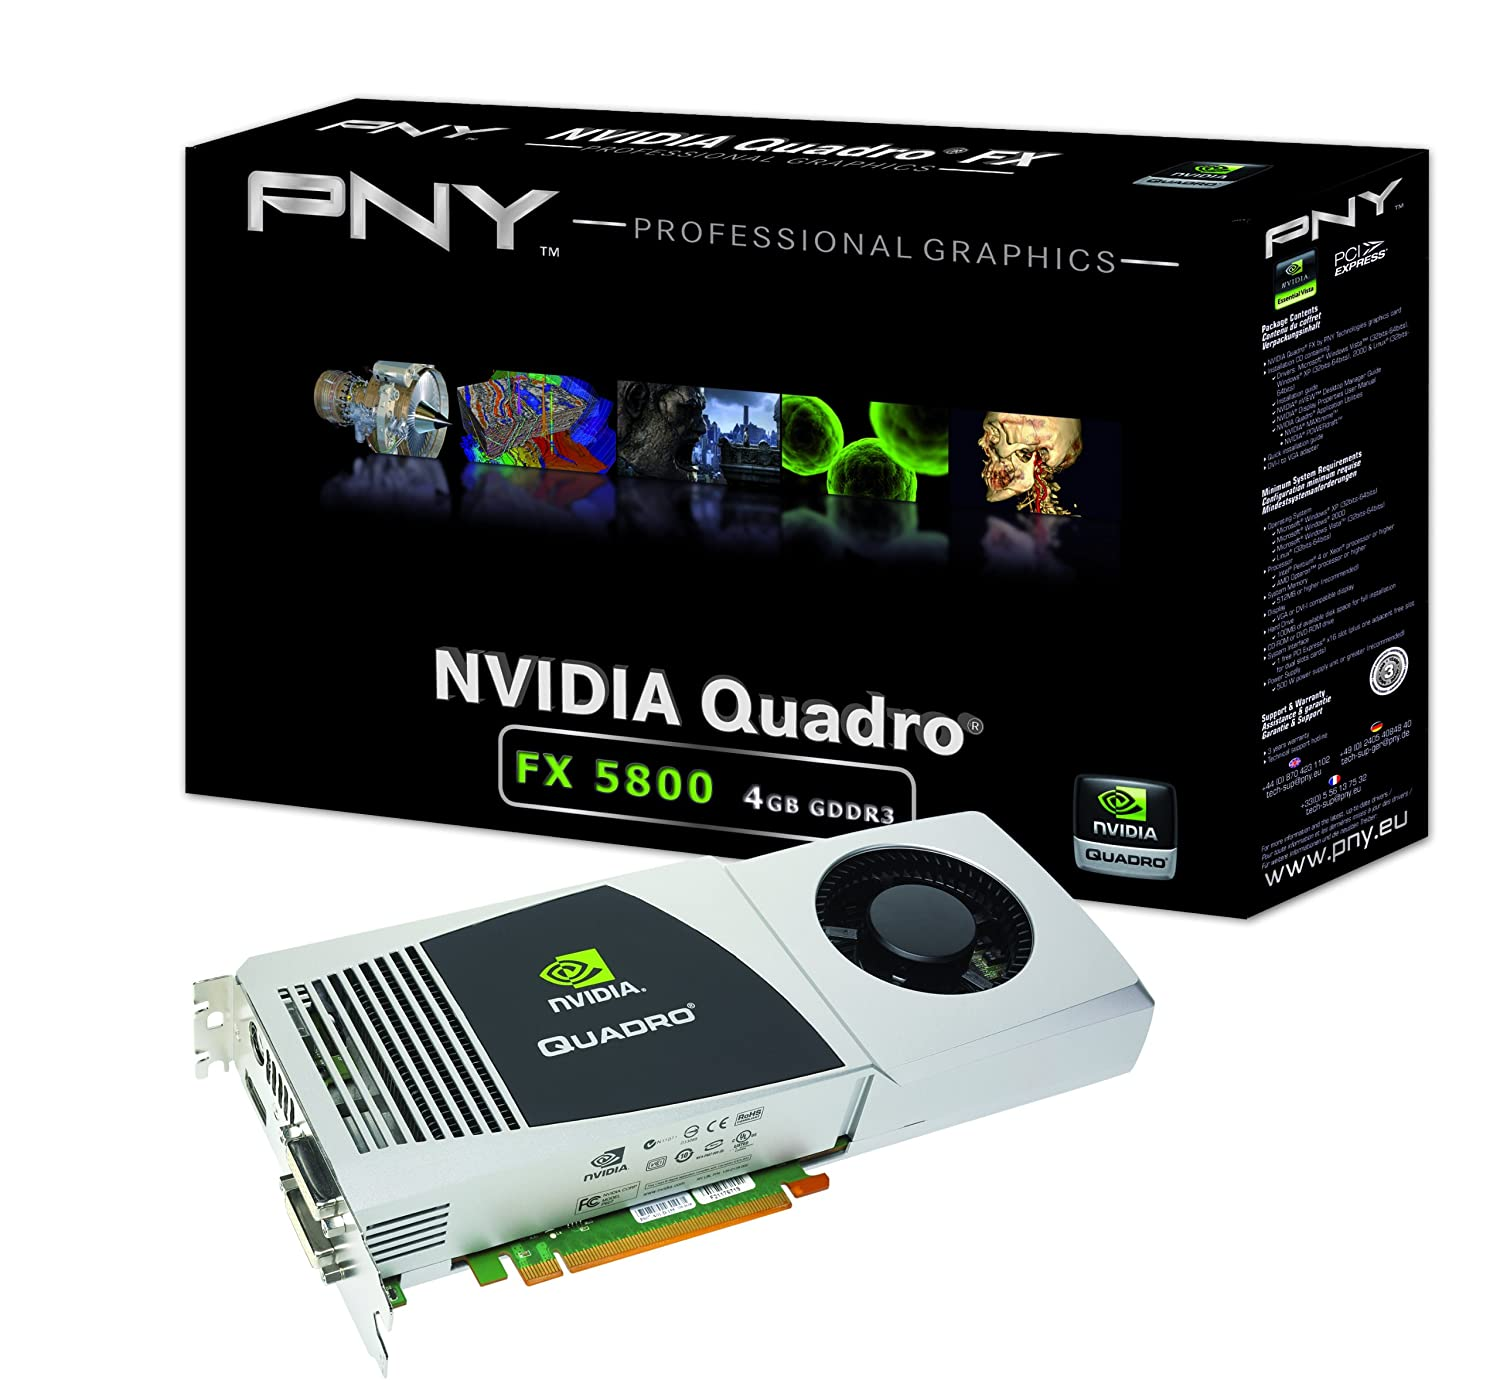 NVIDIA Quadro FX 5800 by PNY 4GB GDDR3 PCI Express Gen 2 x16 Dual DVI-I DL DisplayPort and Stereo OpenGL, DirectX, CUDA, and OpenCL Profesional ...